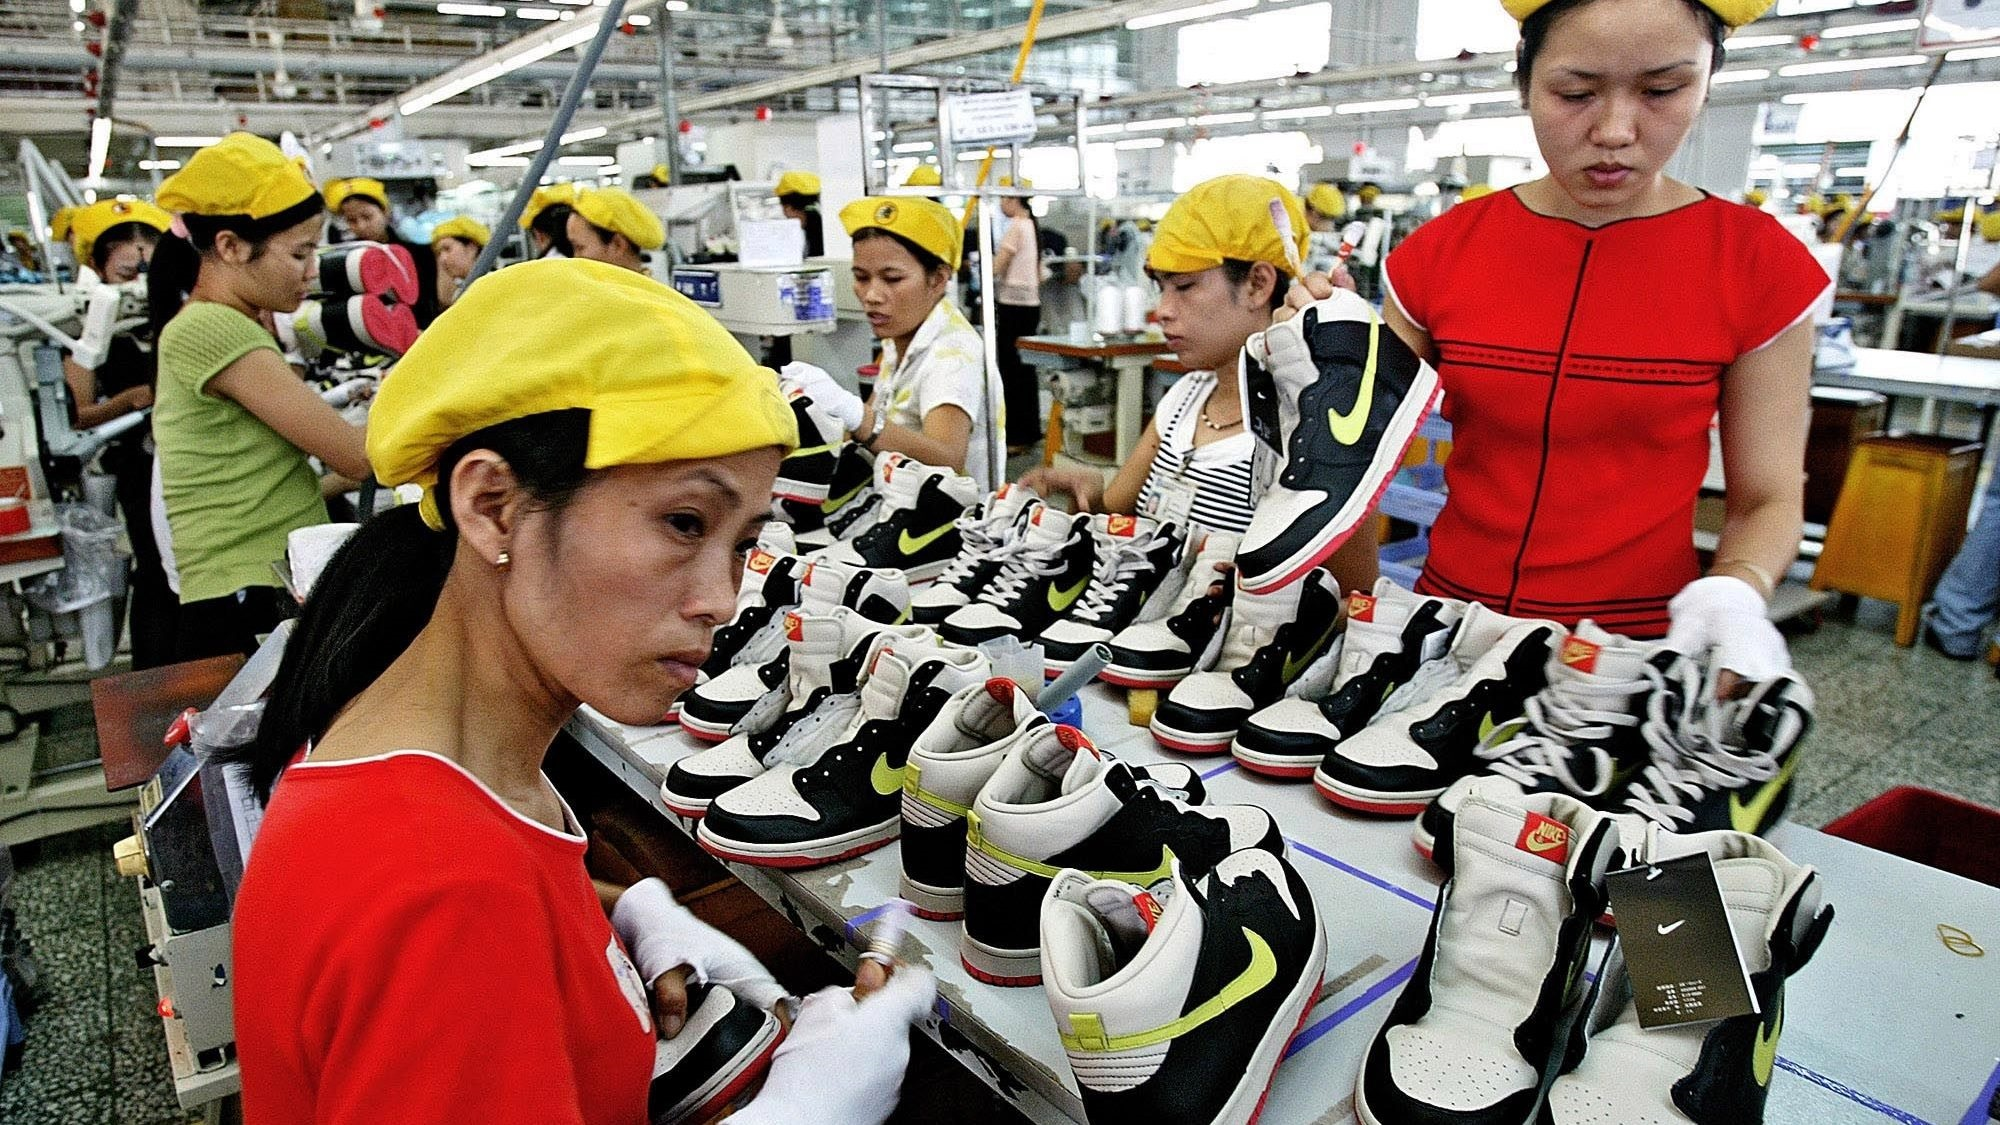 Nike, Adidas, GAP and H&M worry about high processing fees when massive technology giants enter Vietnam - VnReview